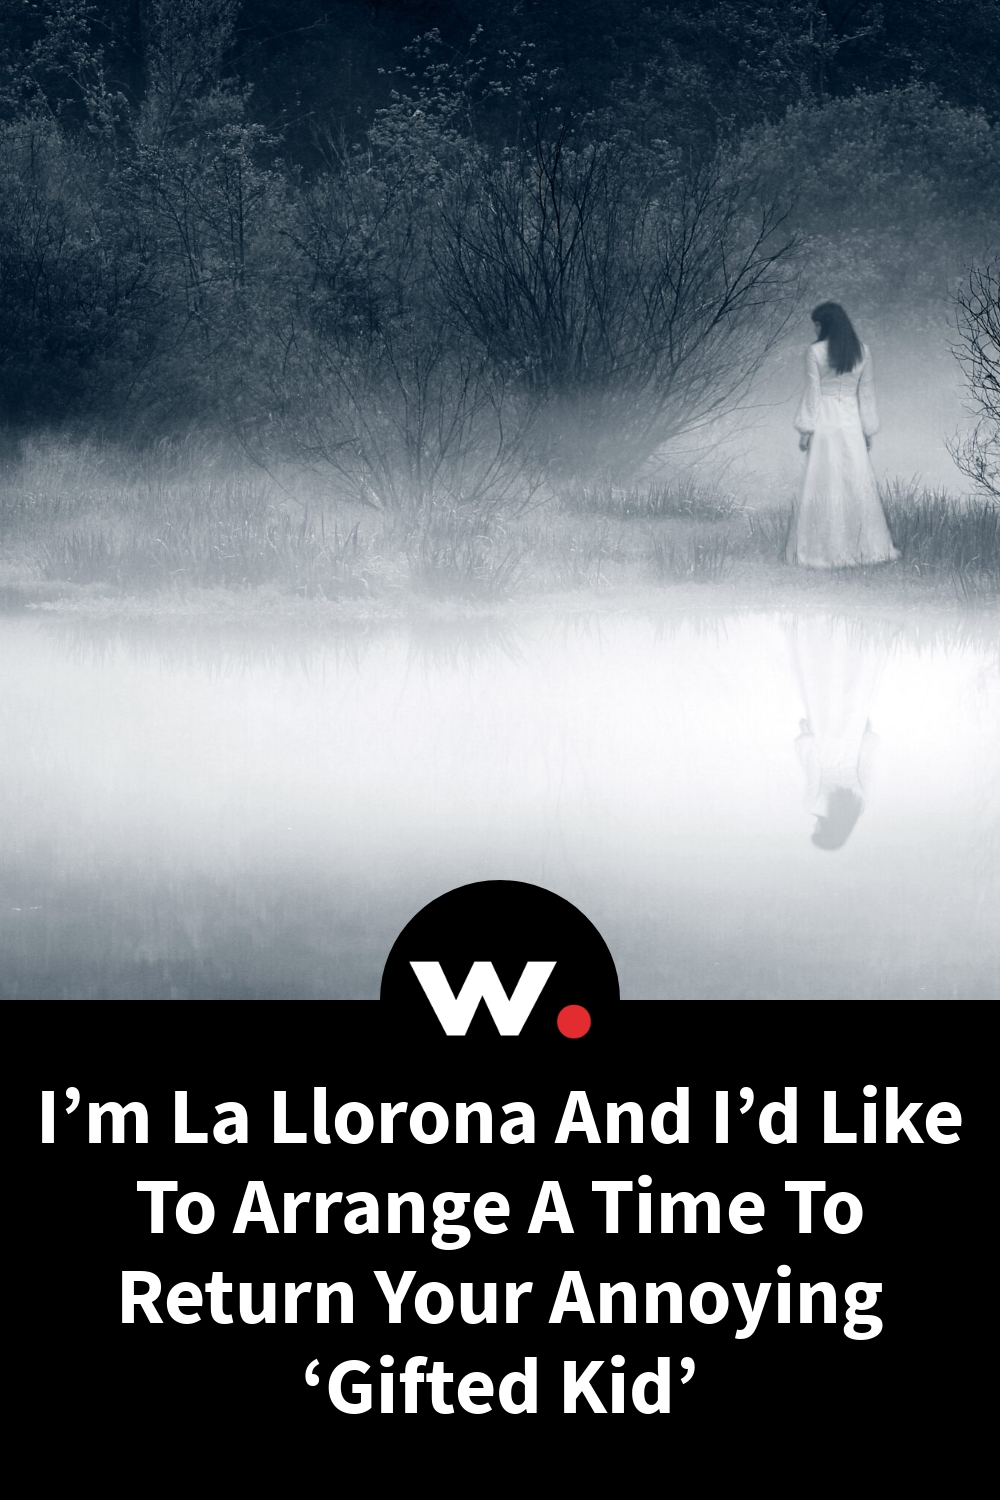 I'm La Llorona And I'd Like To Arrange A Time To Return Your Annoying 'Gifted Kid'